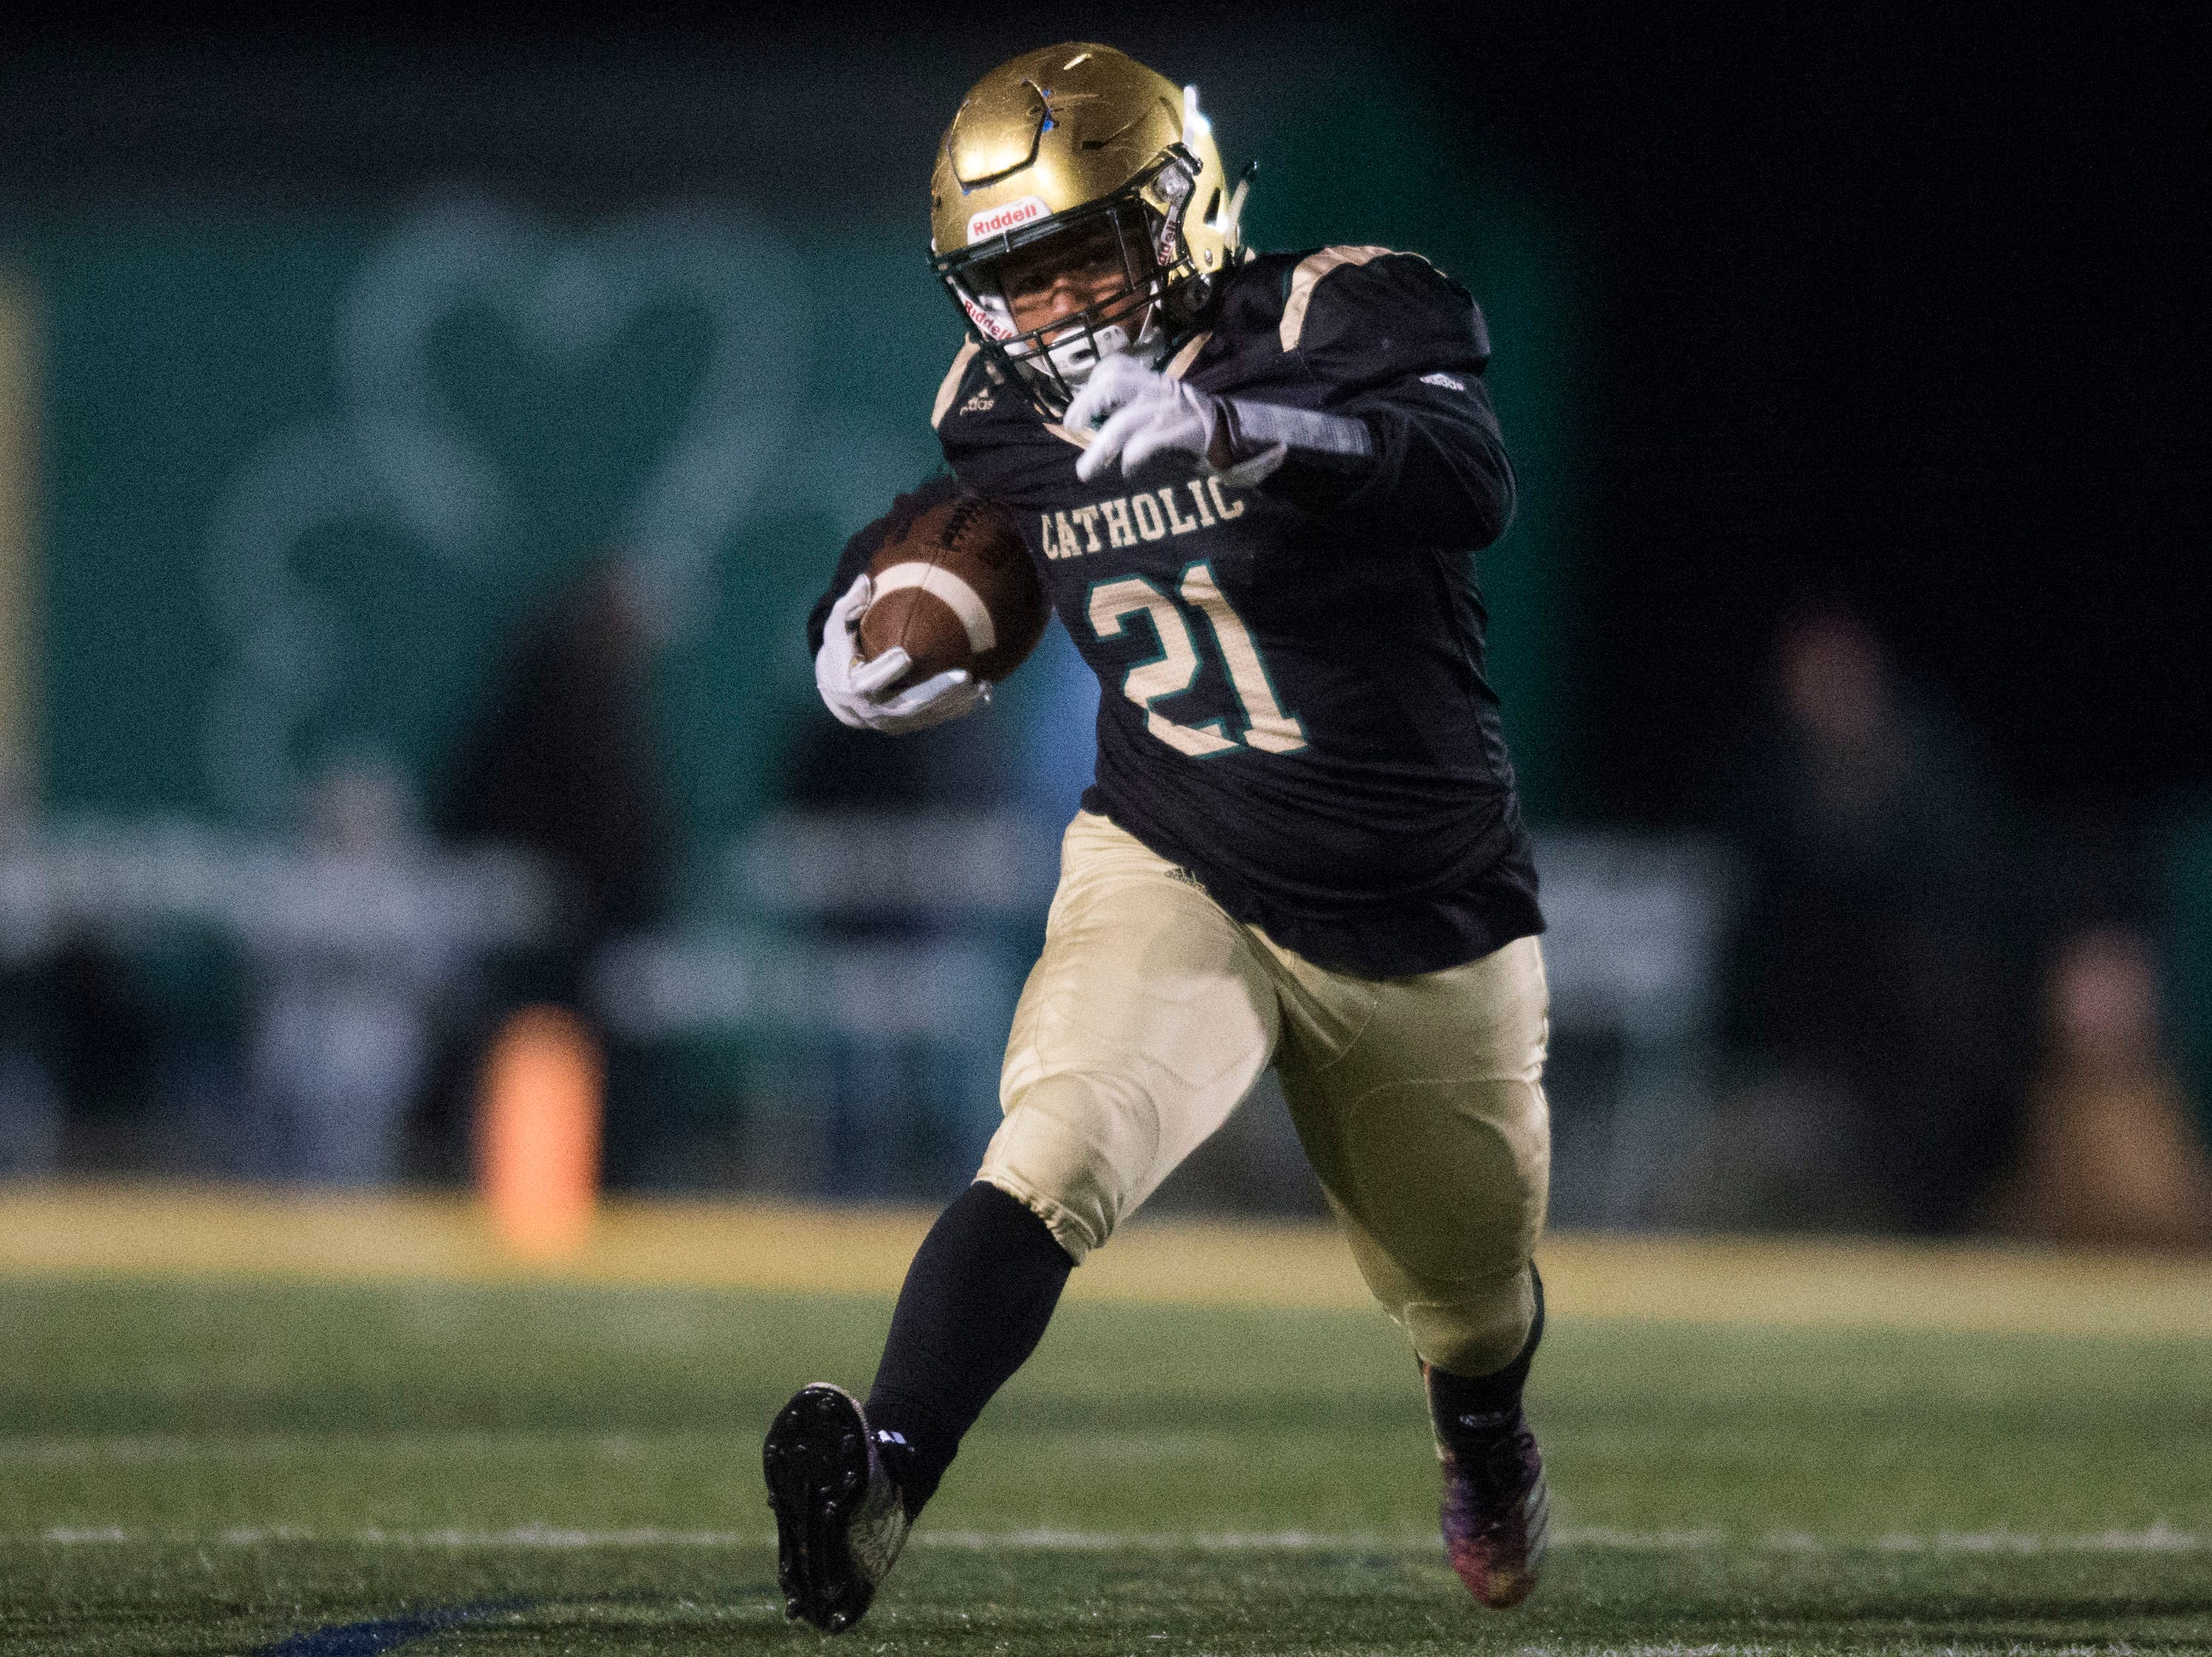 Catholic's Drew Hicks (21) runs the ball during a Class 5A semifinal game between Central at Catholic Friday, Nov. 23, 2018. Central defeated Catholic 24-19.